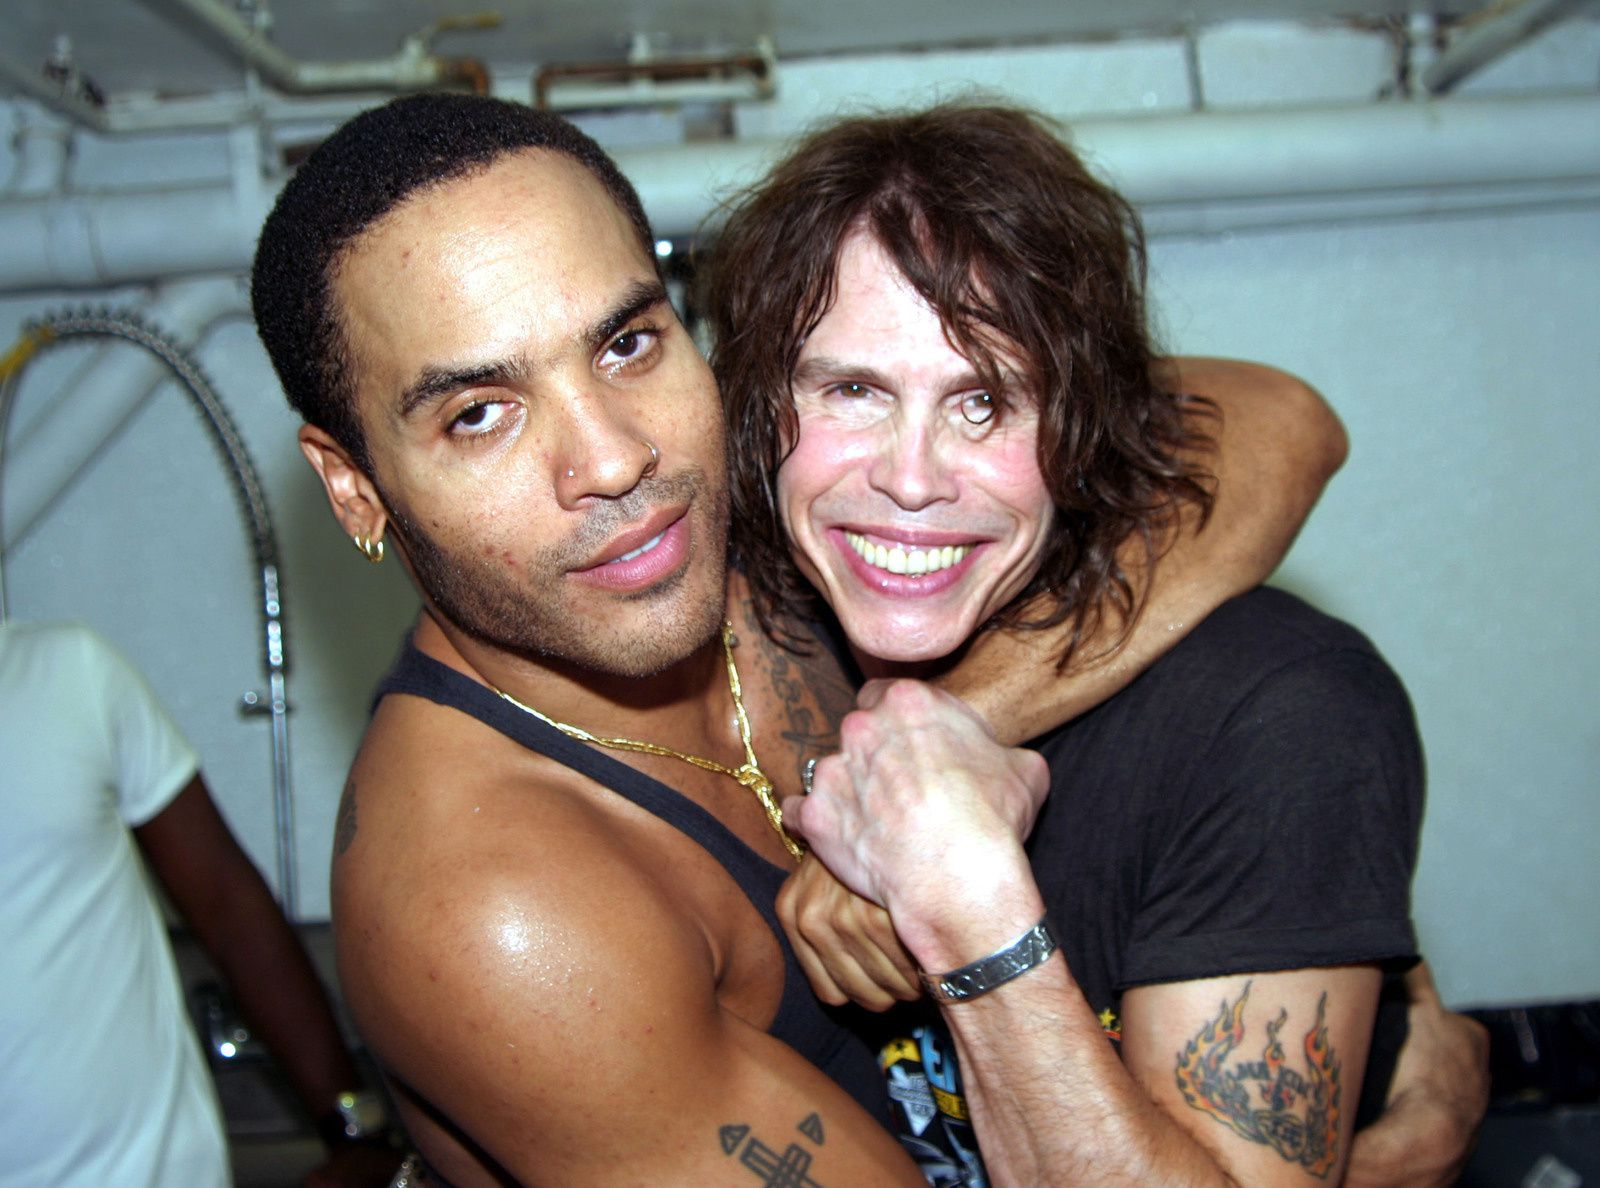 Lenny Kravitz and Steven Tyler during KOS Opening Party at KOS in New York City, NY, US. (Photo by Johnny Nunez/WireImage)